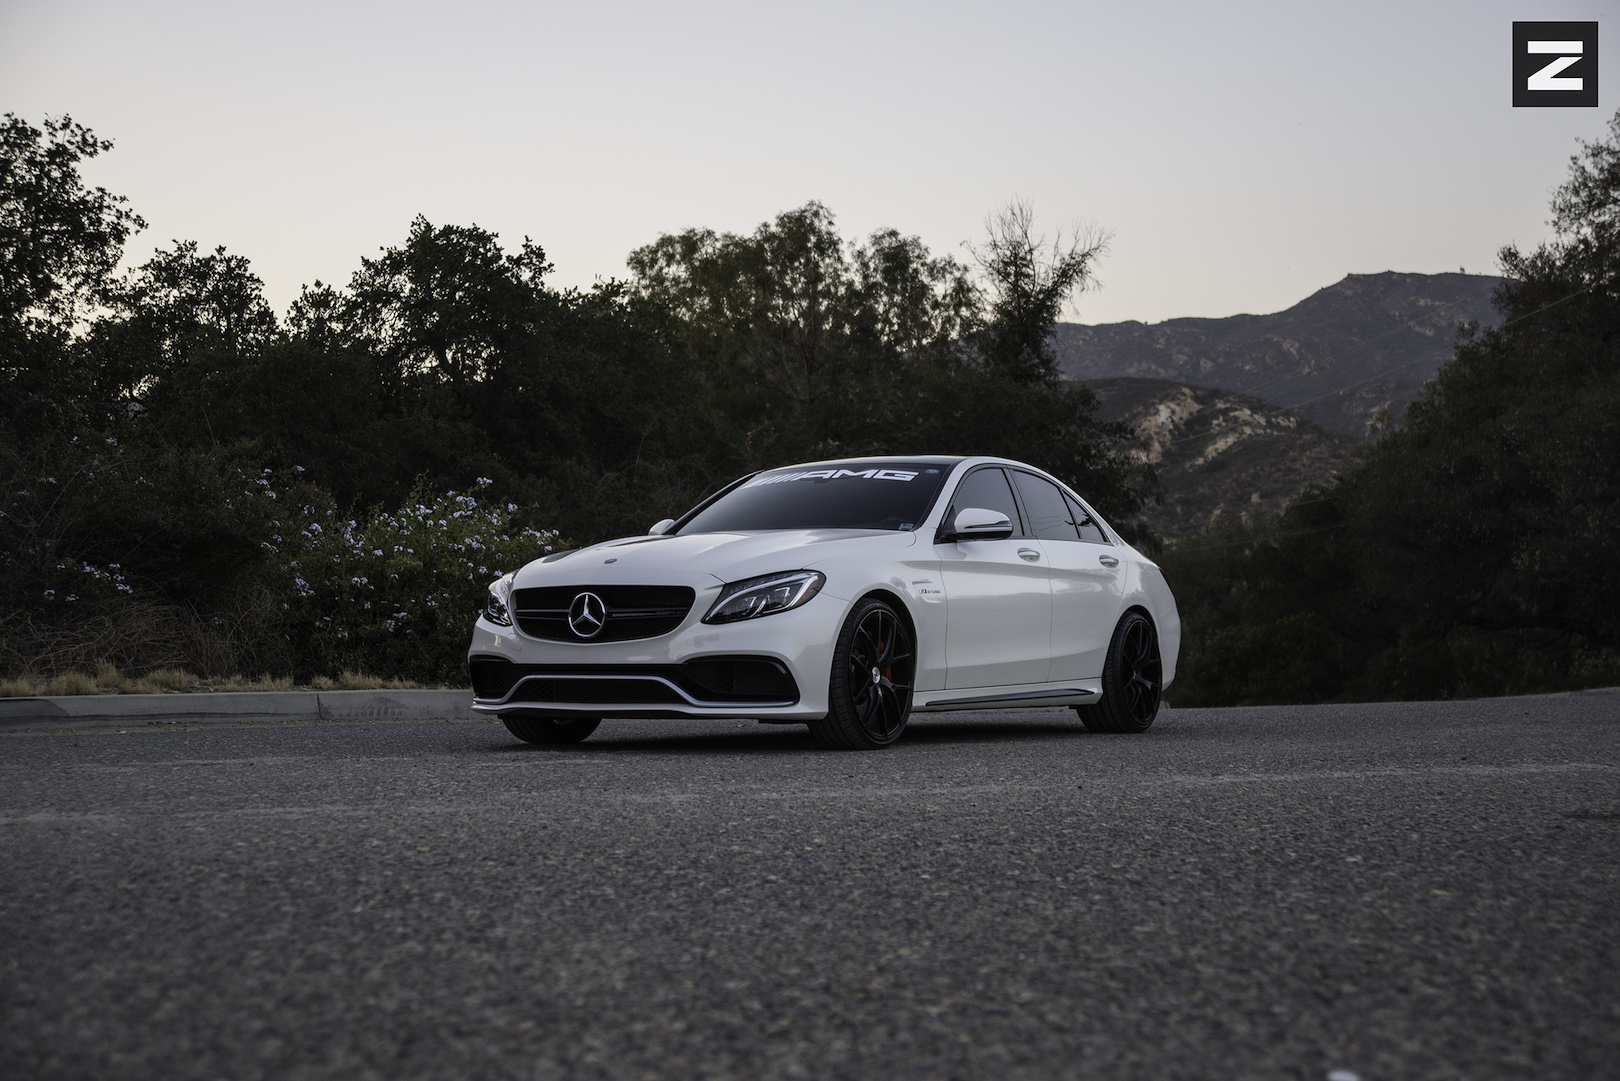 Mercedes Benz C63 AMG W205 White Black ZS05